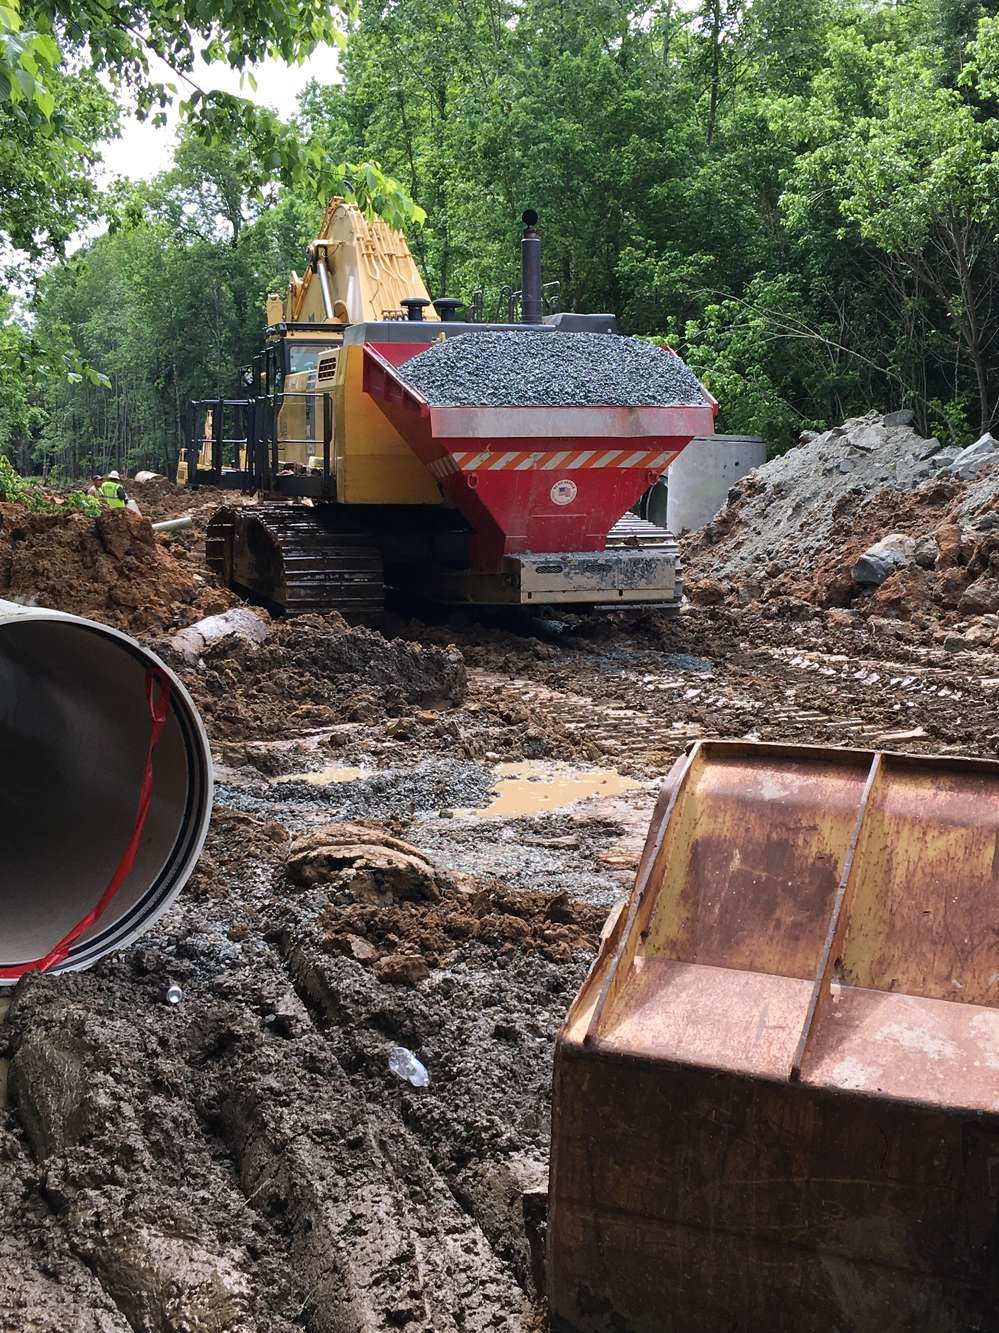 Park Construction of North Carolina Inc. specializes in water and sewer construction, and 95 percent of the company's projects are performed for municipalities.